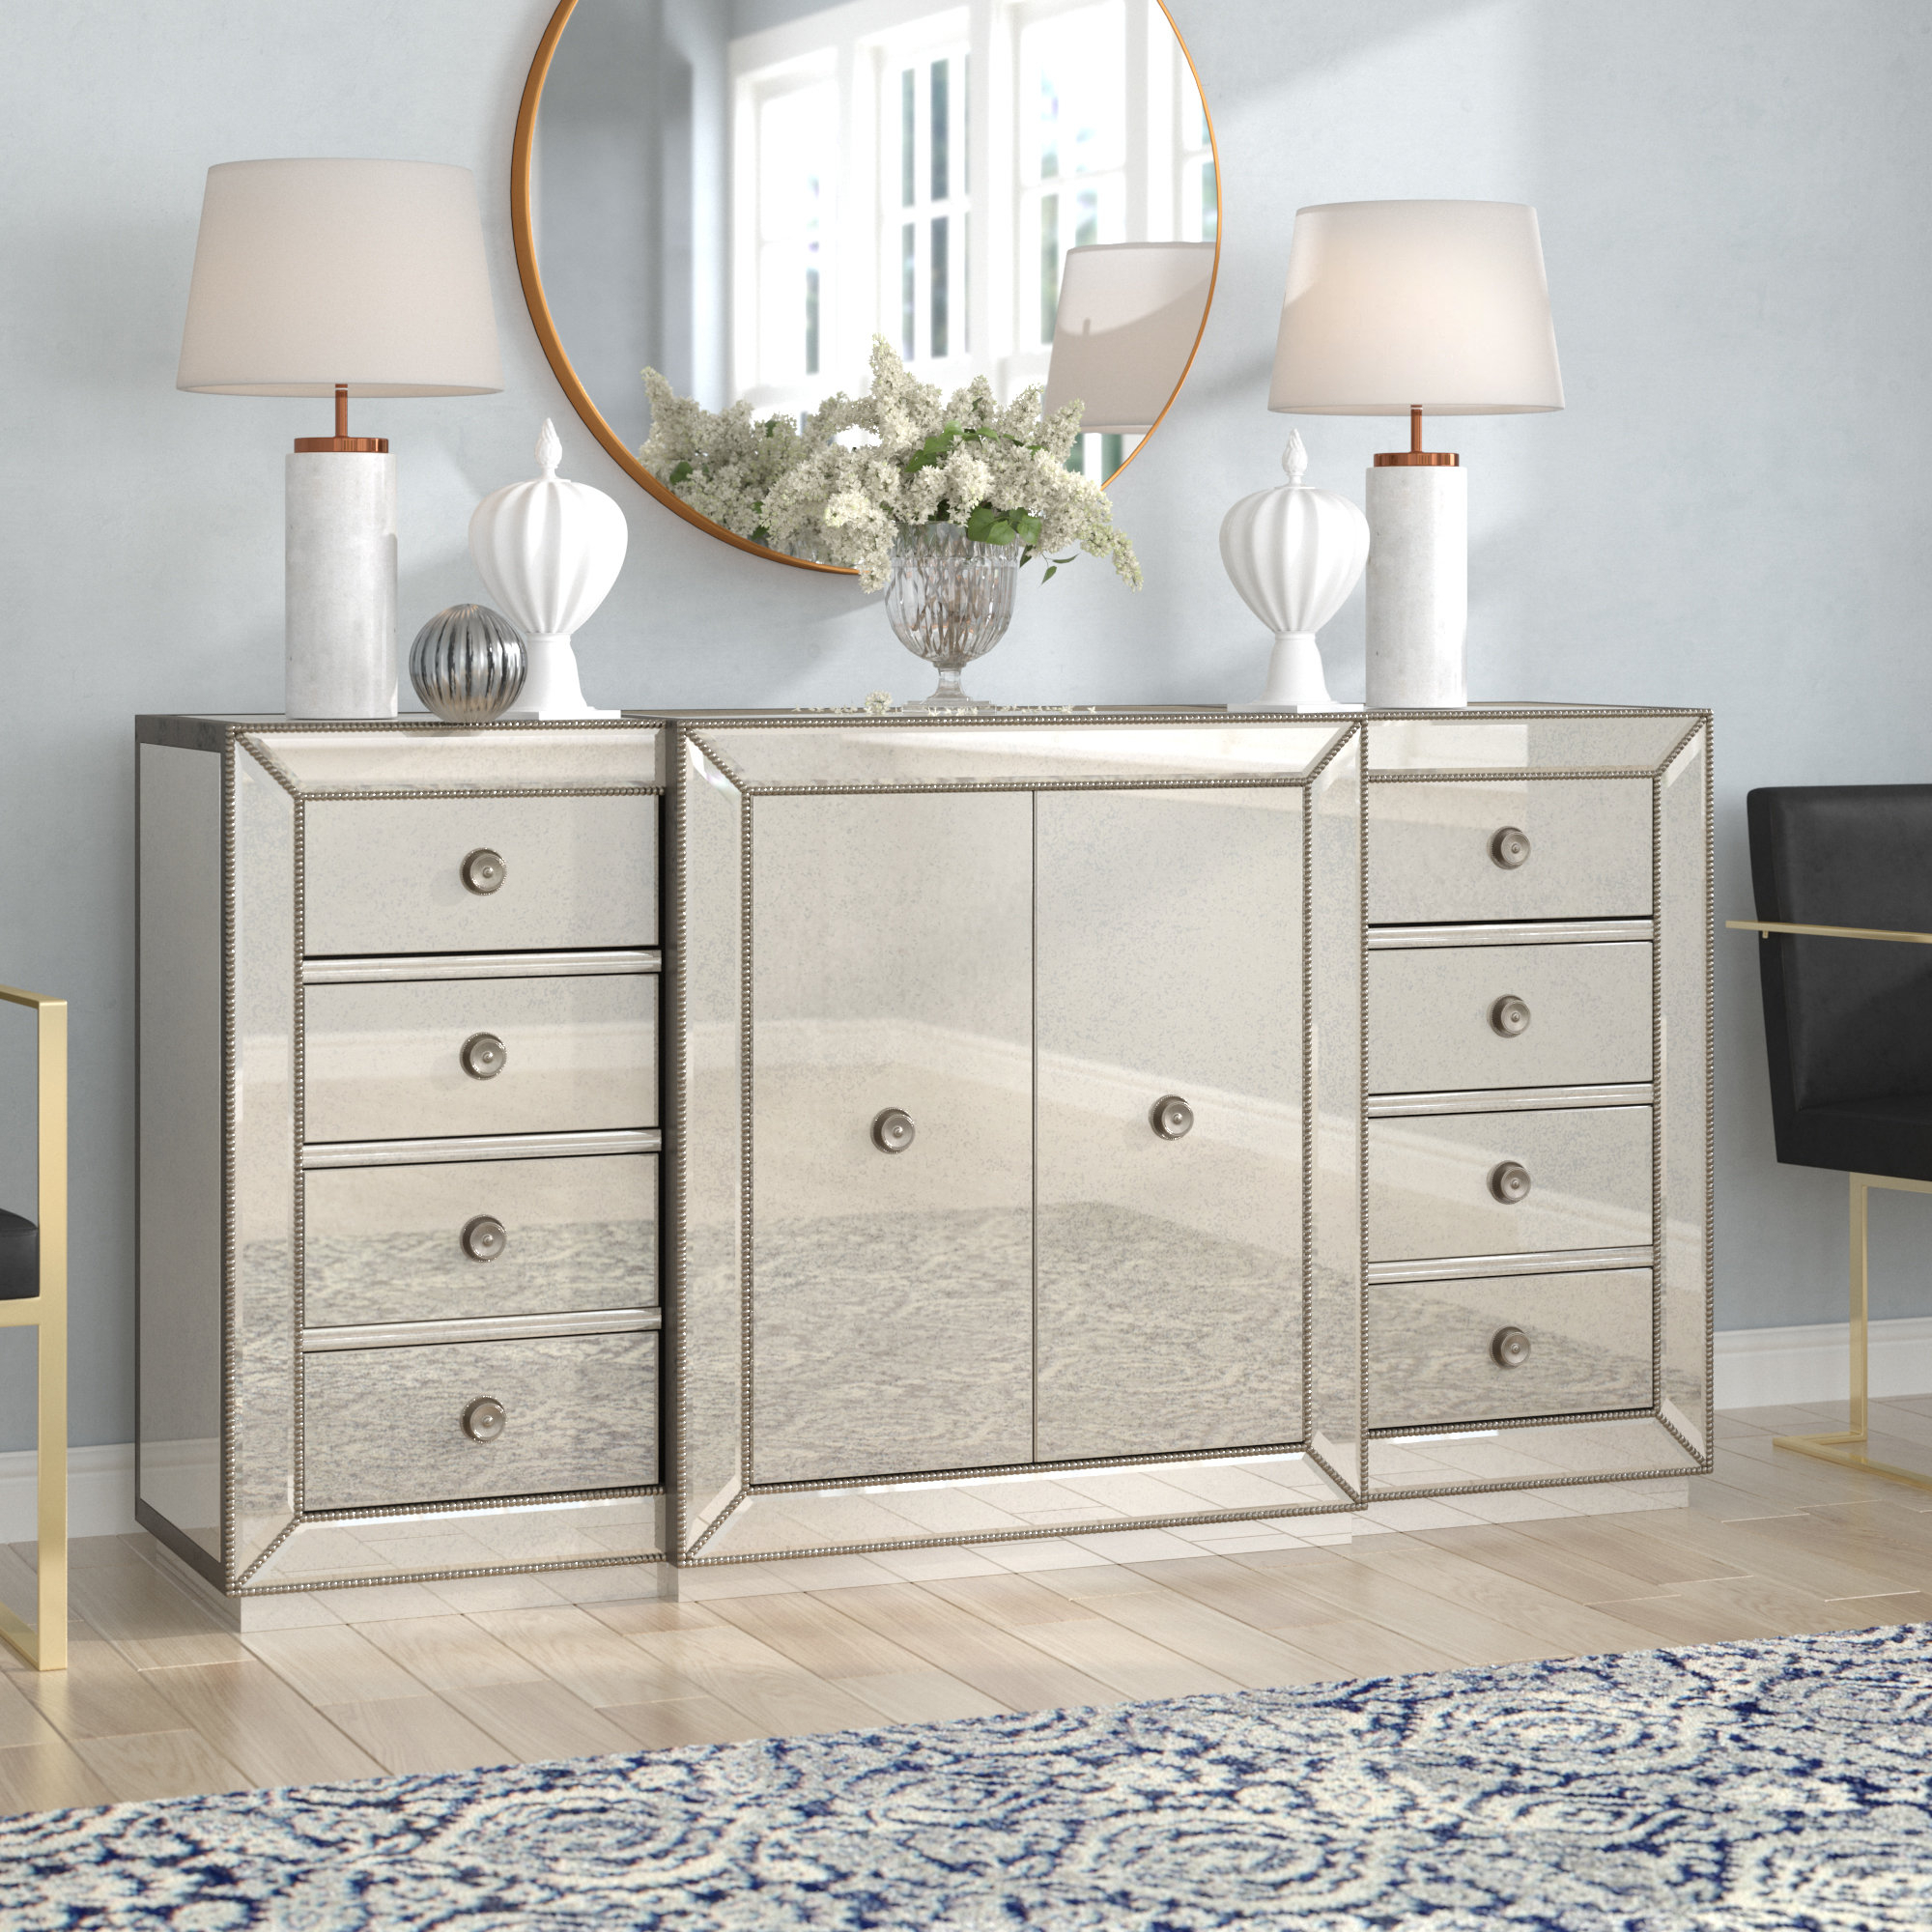 Wayfair Regarding Aged Mirrored 2 Door Sideboards (View 19 of 20)